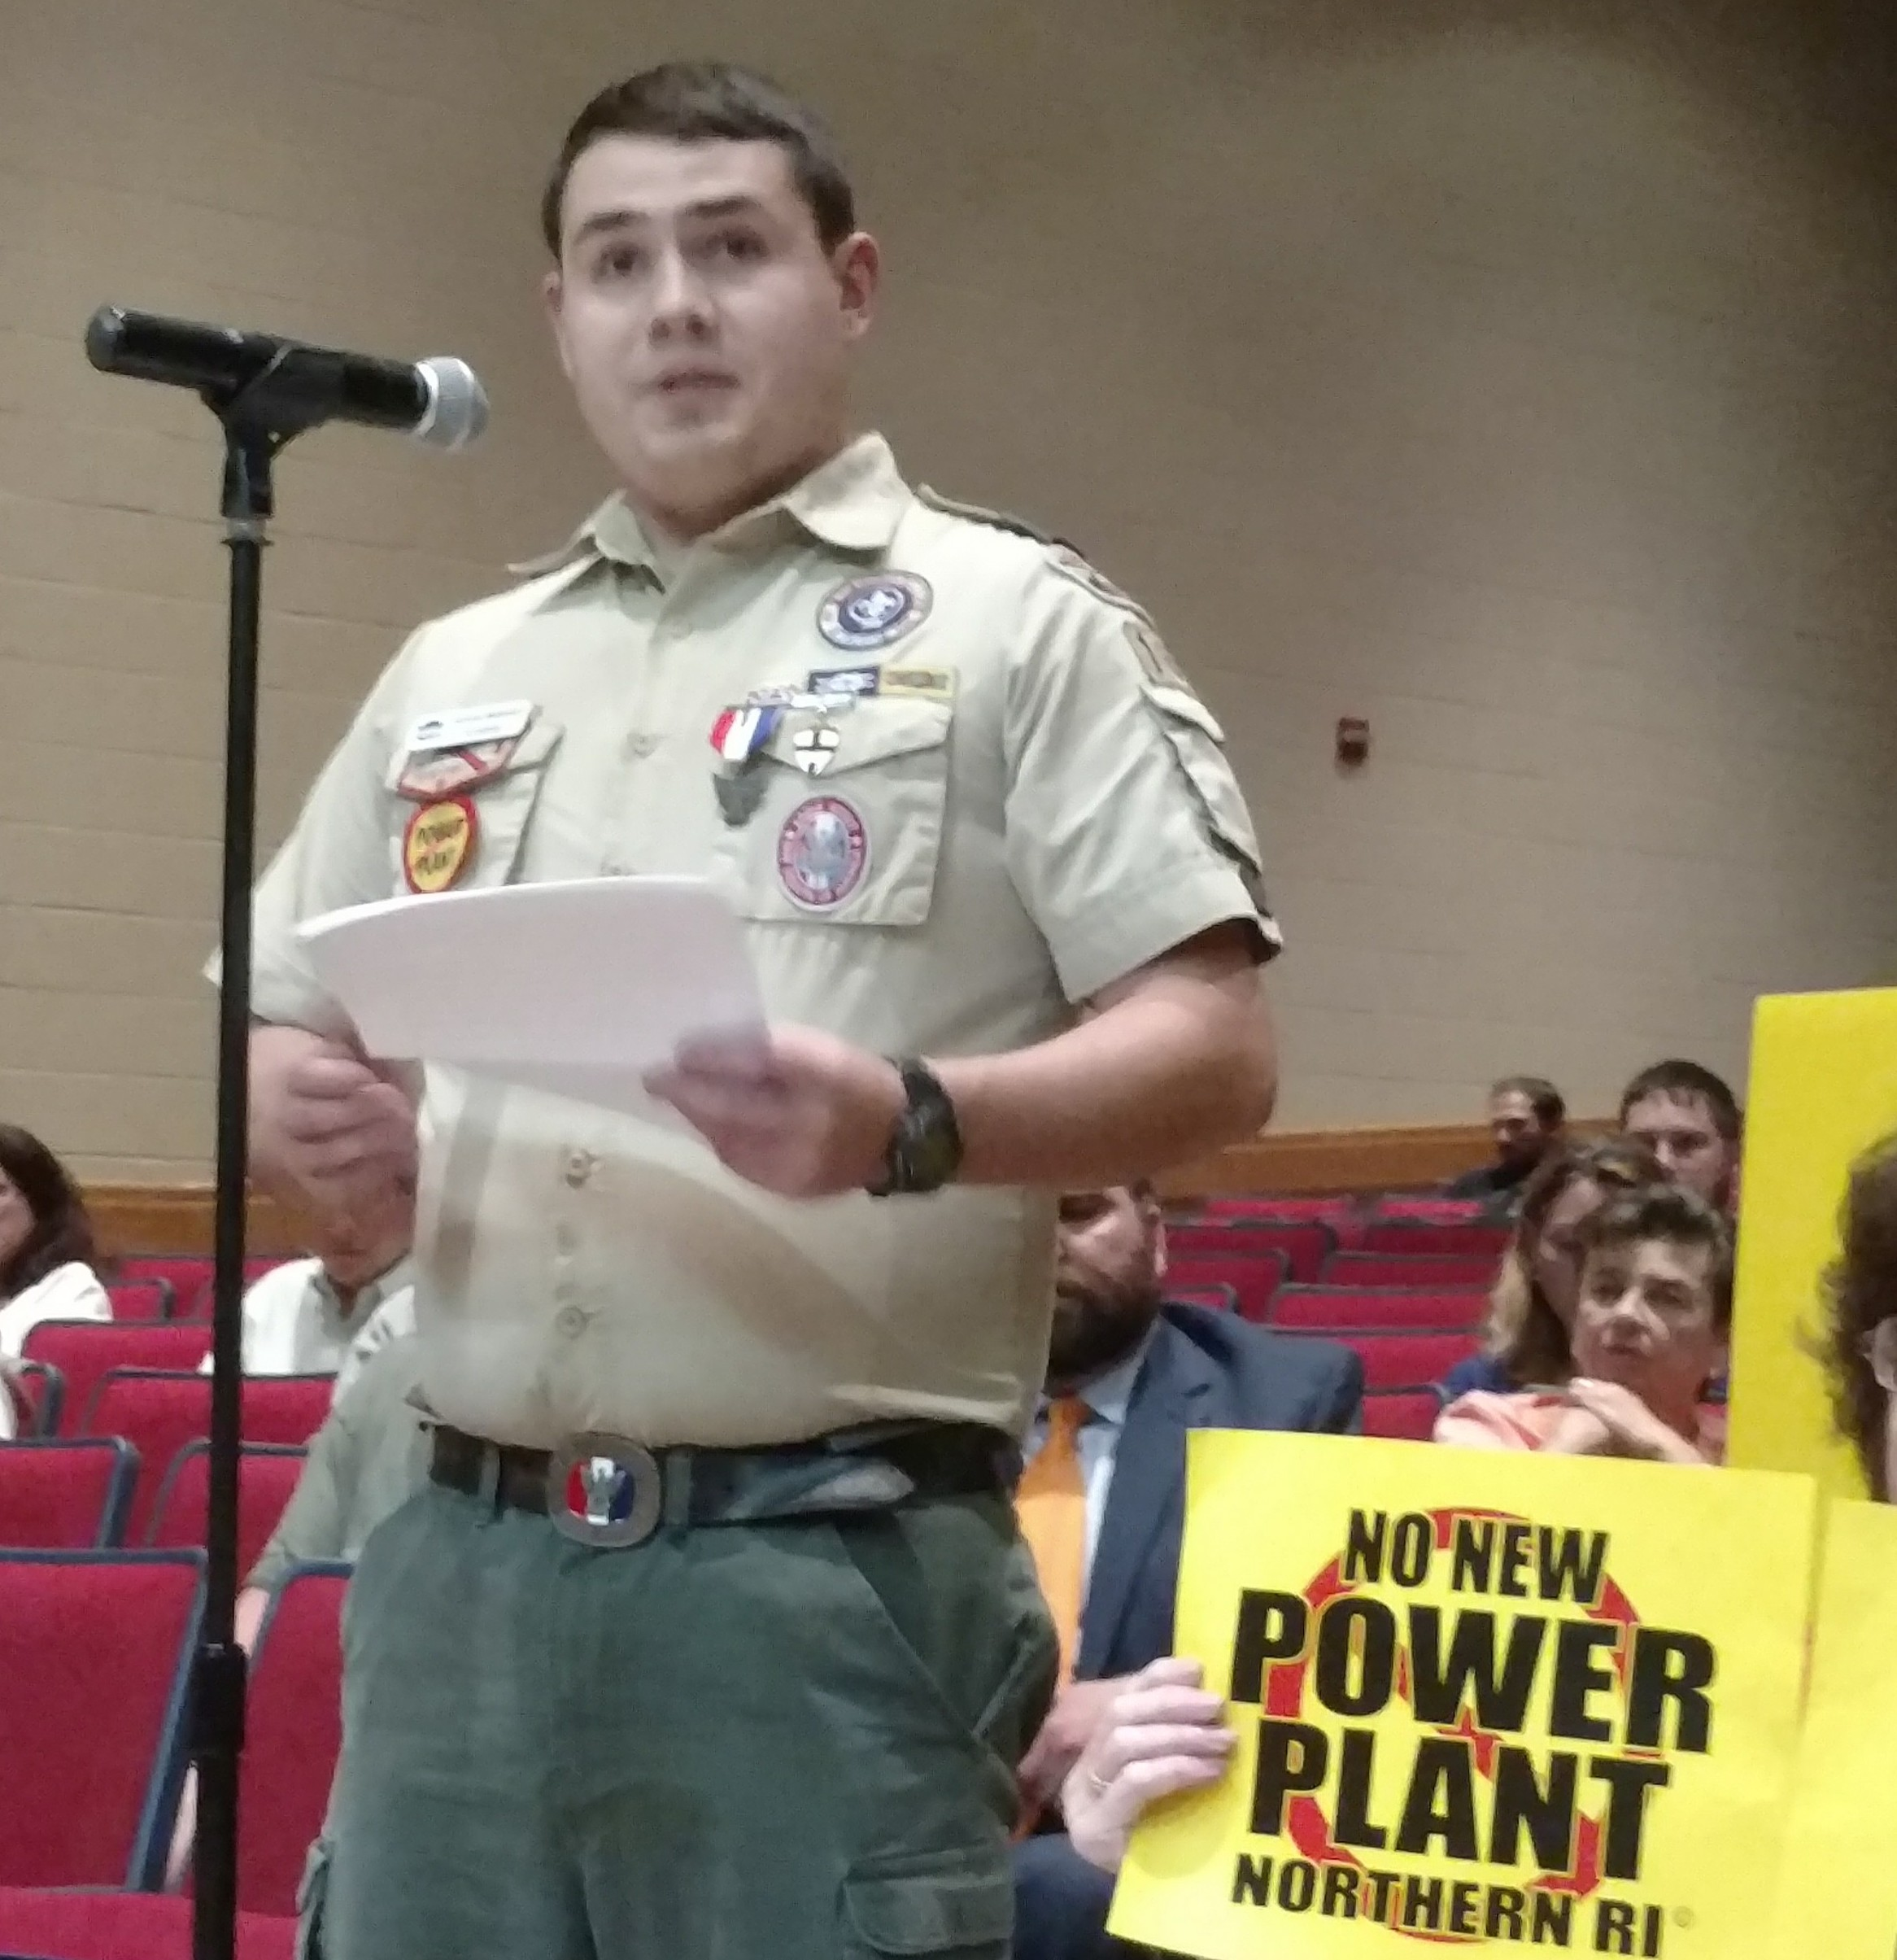 Eagle Scout Nicholas Wattendorf testified in opposition to the power plant.